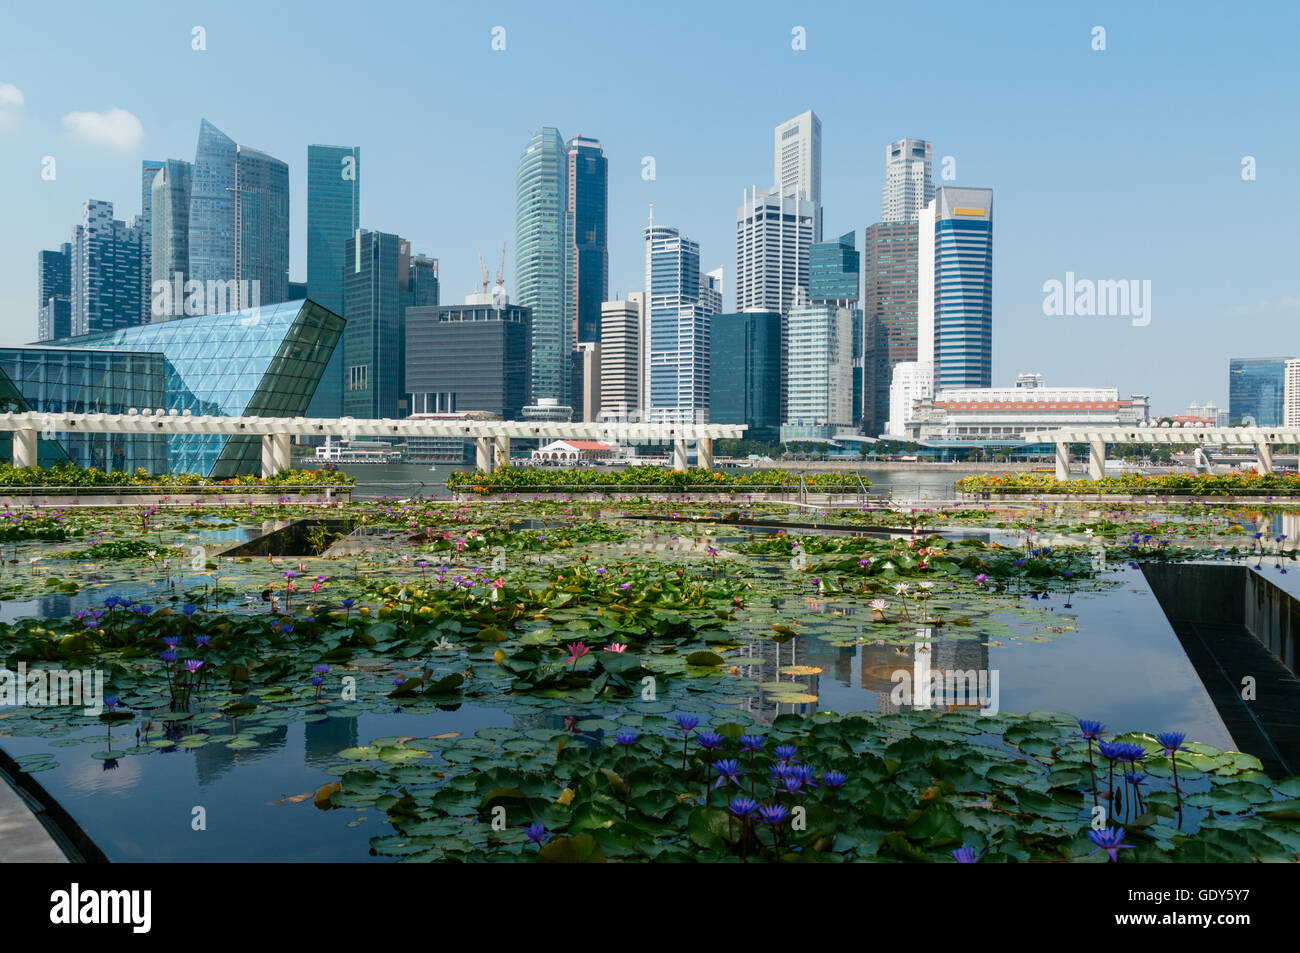 Singapore Central Business district skyline view with a  blooming lily pond at the Art Science Museum building. - Stock Image